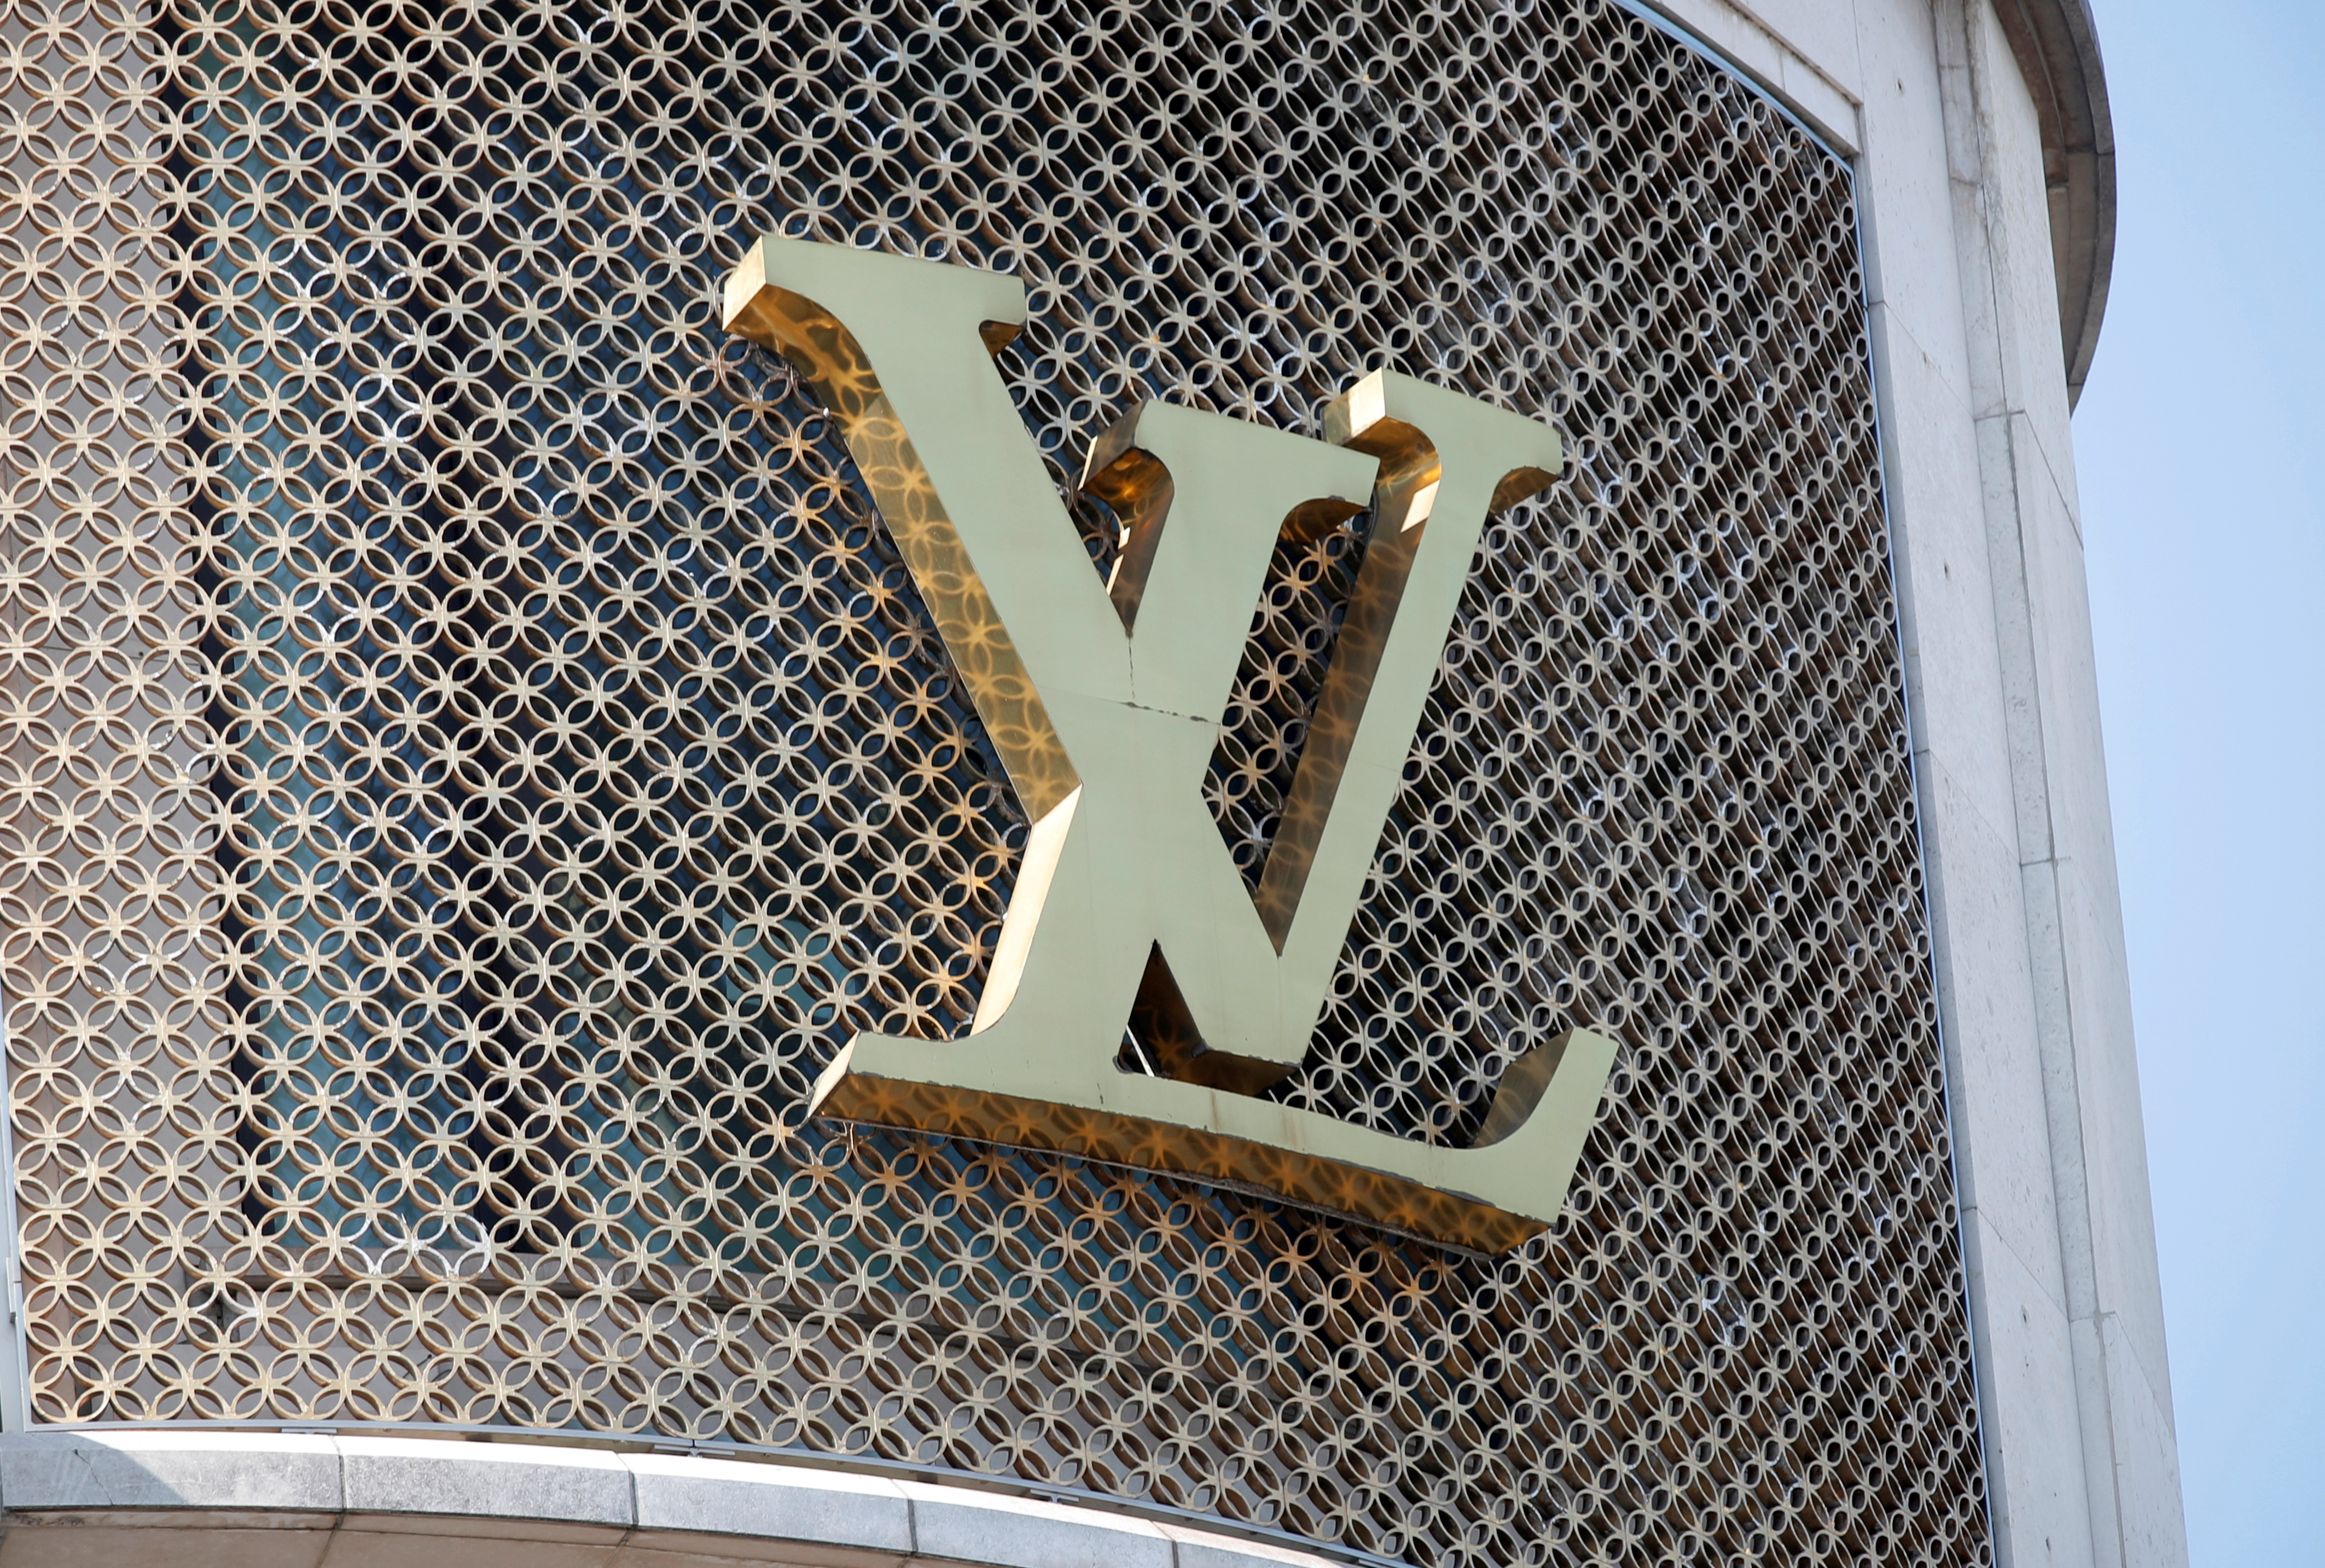 A Louis Vuitton logo is seen outside a store on the Champs-Elysees in Paris, France, September 18, 2020.   REUTERS/Charles Platiau/File Photo